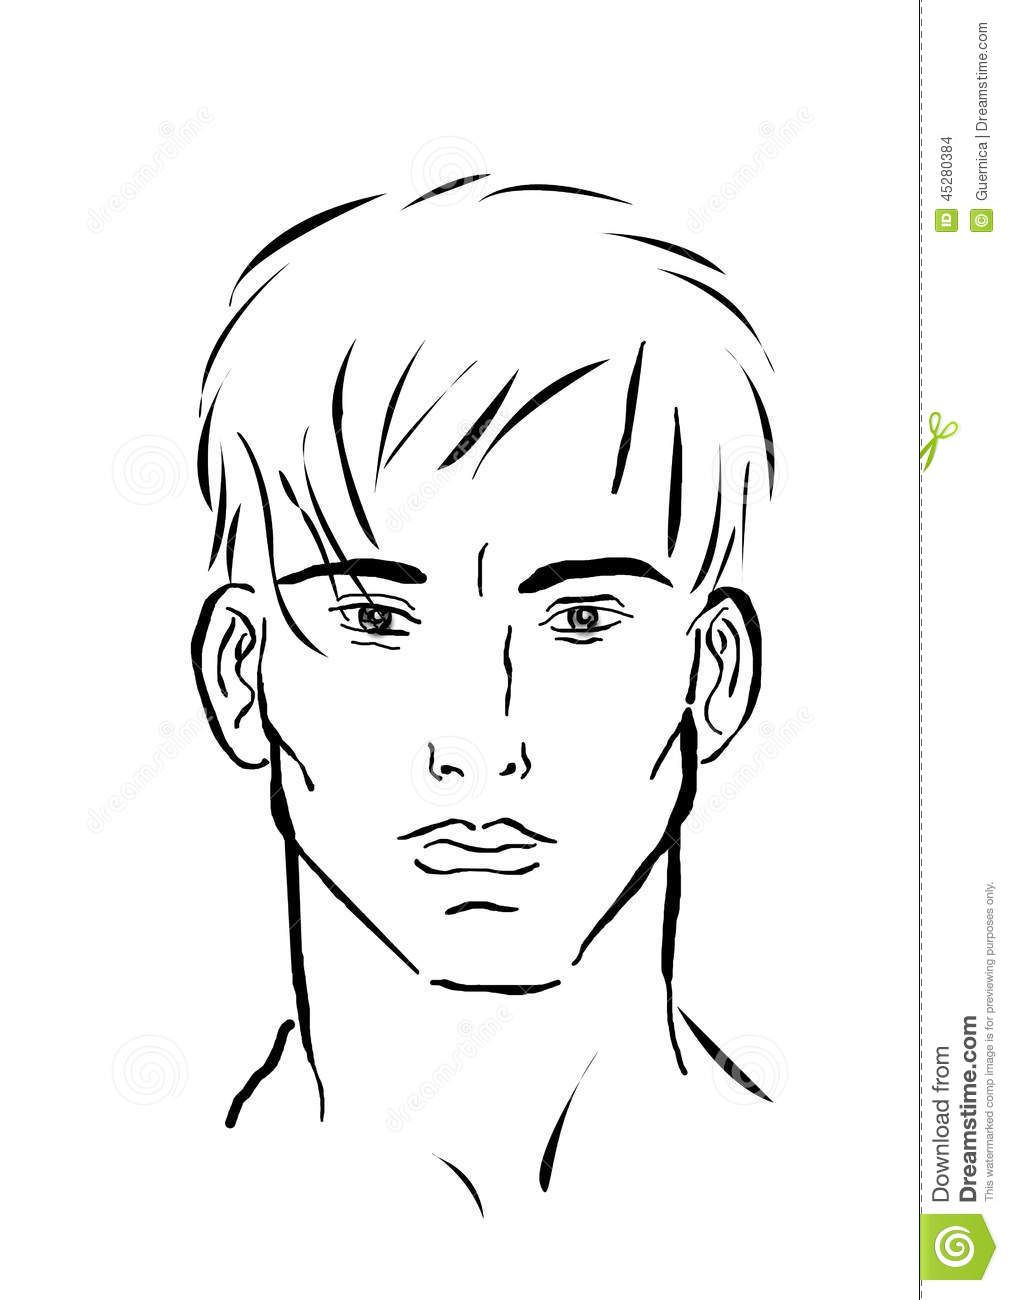 Line Drawing Boy Face : Simple sketched faces google search penelopiad puppet